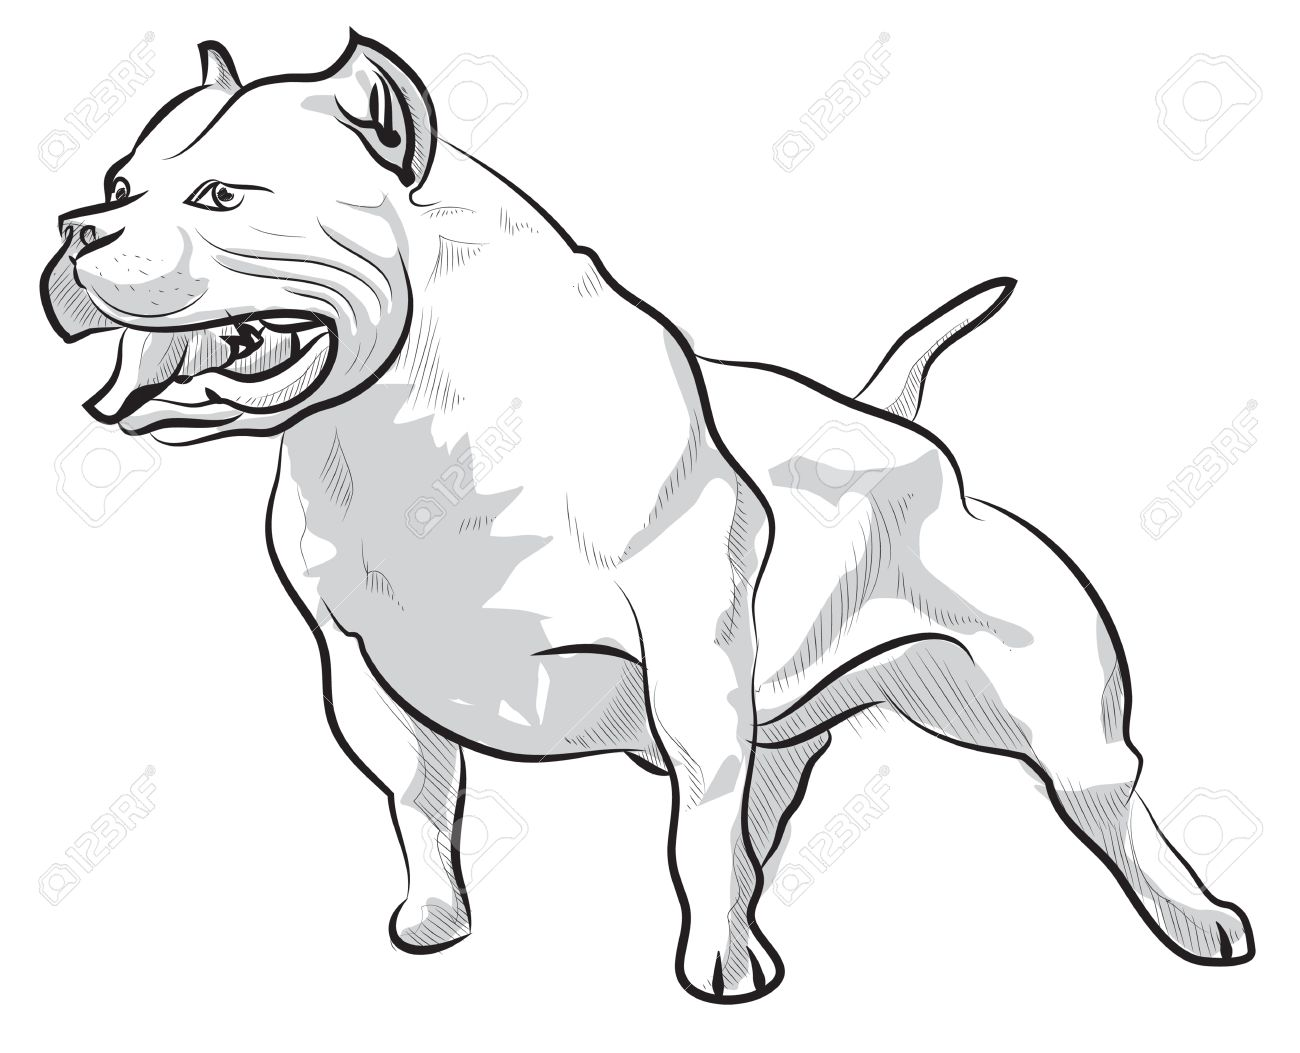 1300x1053 Vector Sketch Hand Drawing Illustration Pitbull Barking Royalty